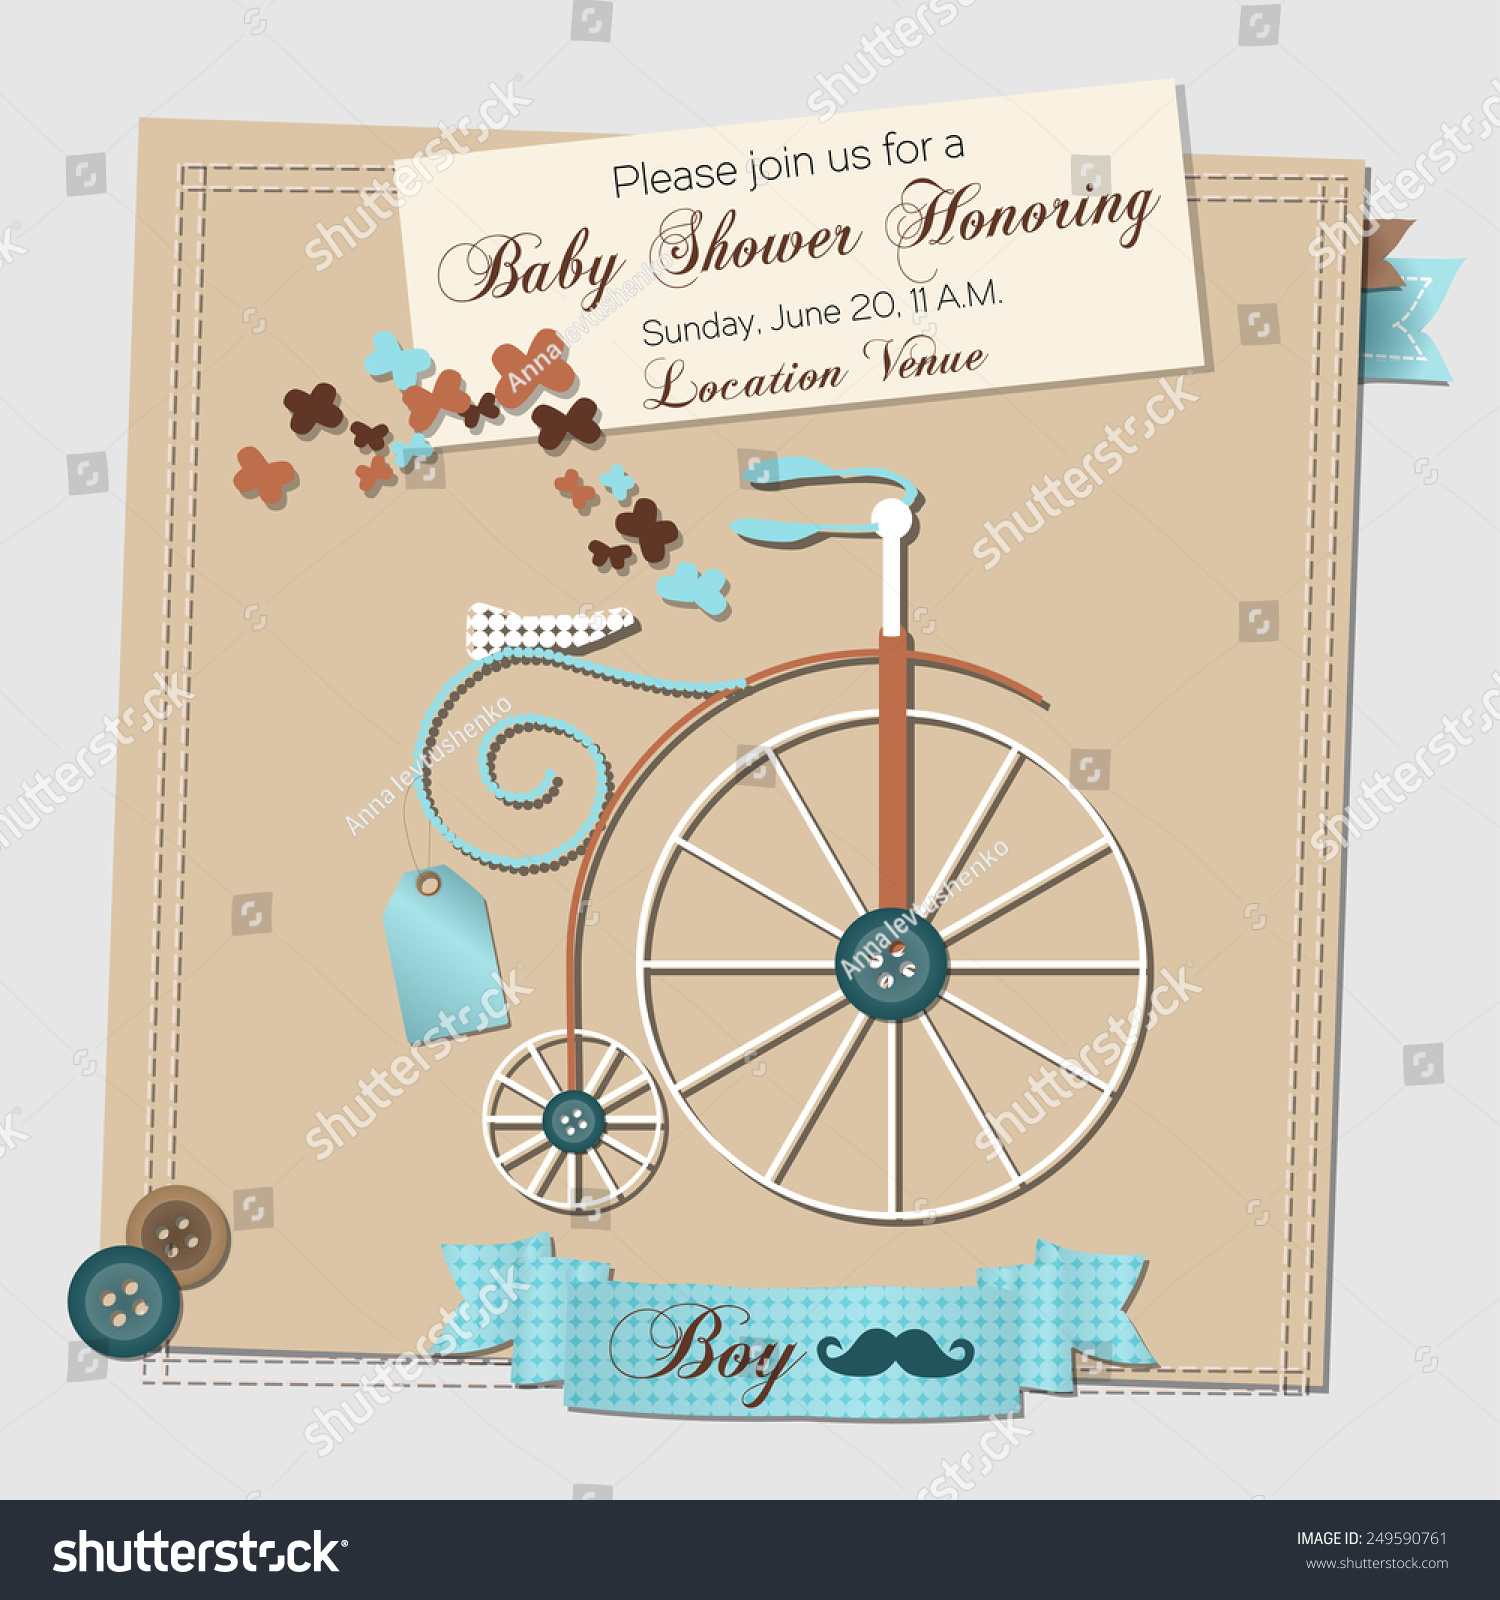 Baby shower invitation template vector illustration stock vector baby shower invitation template vector illustration with a vintage bicycle filmwisefo